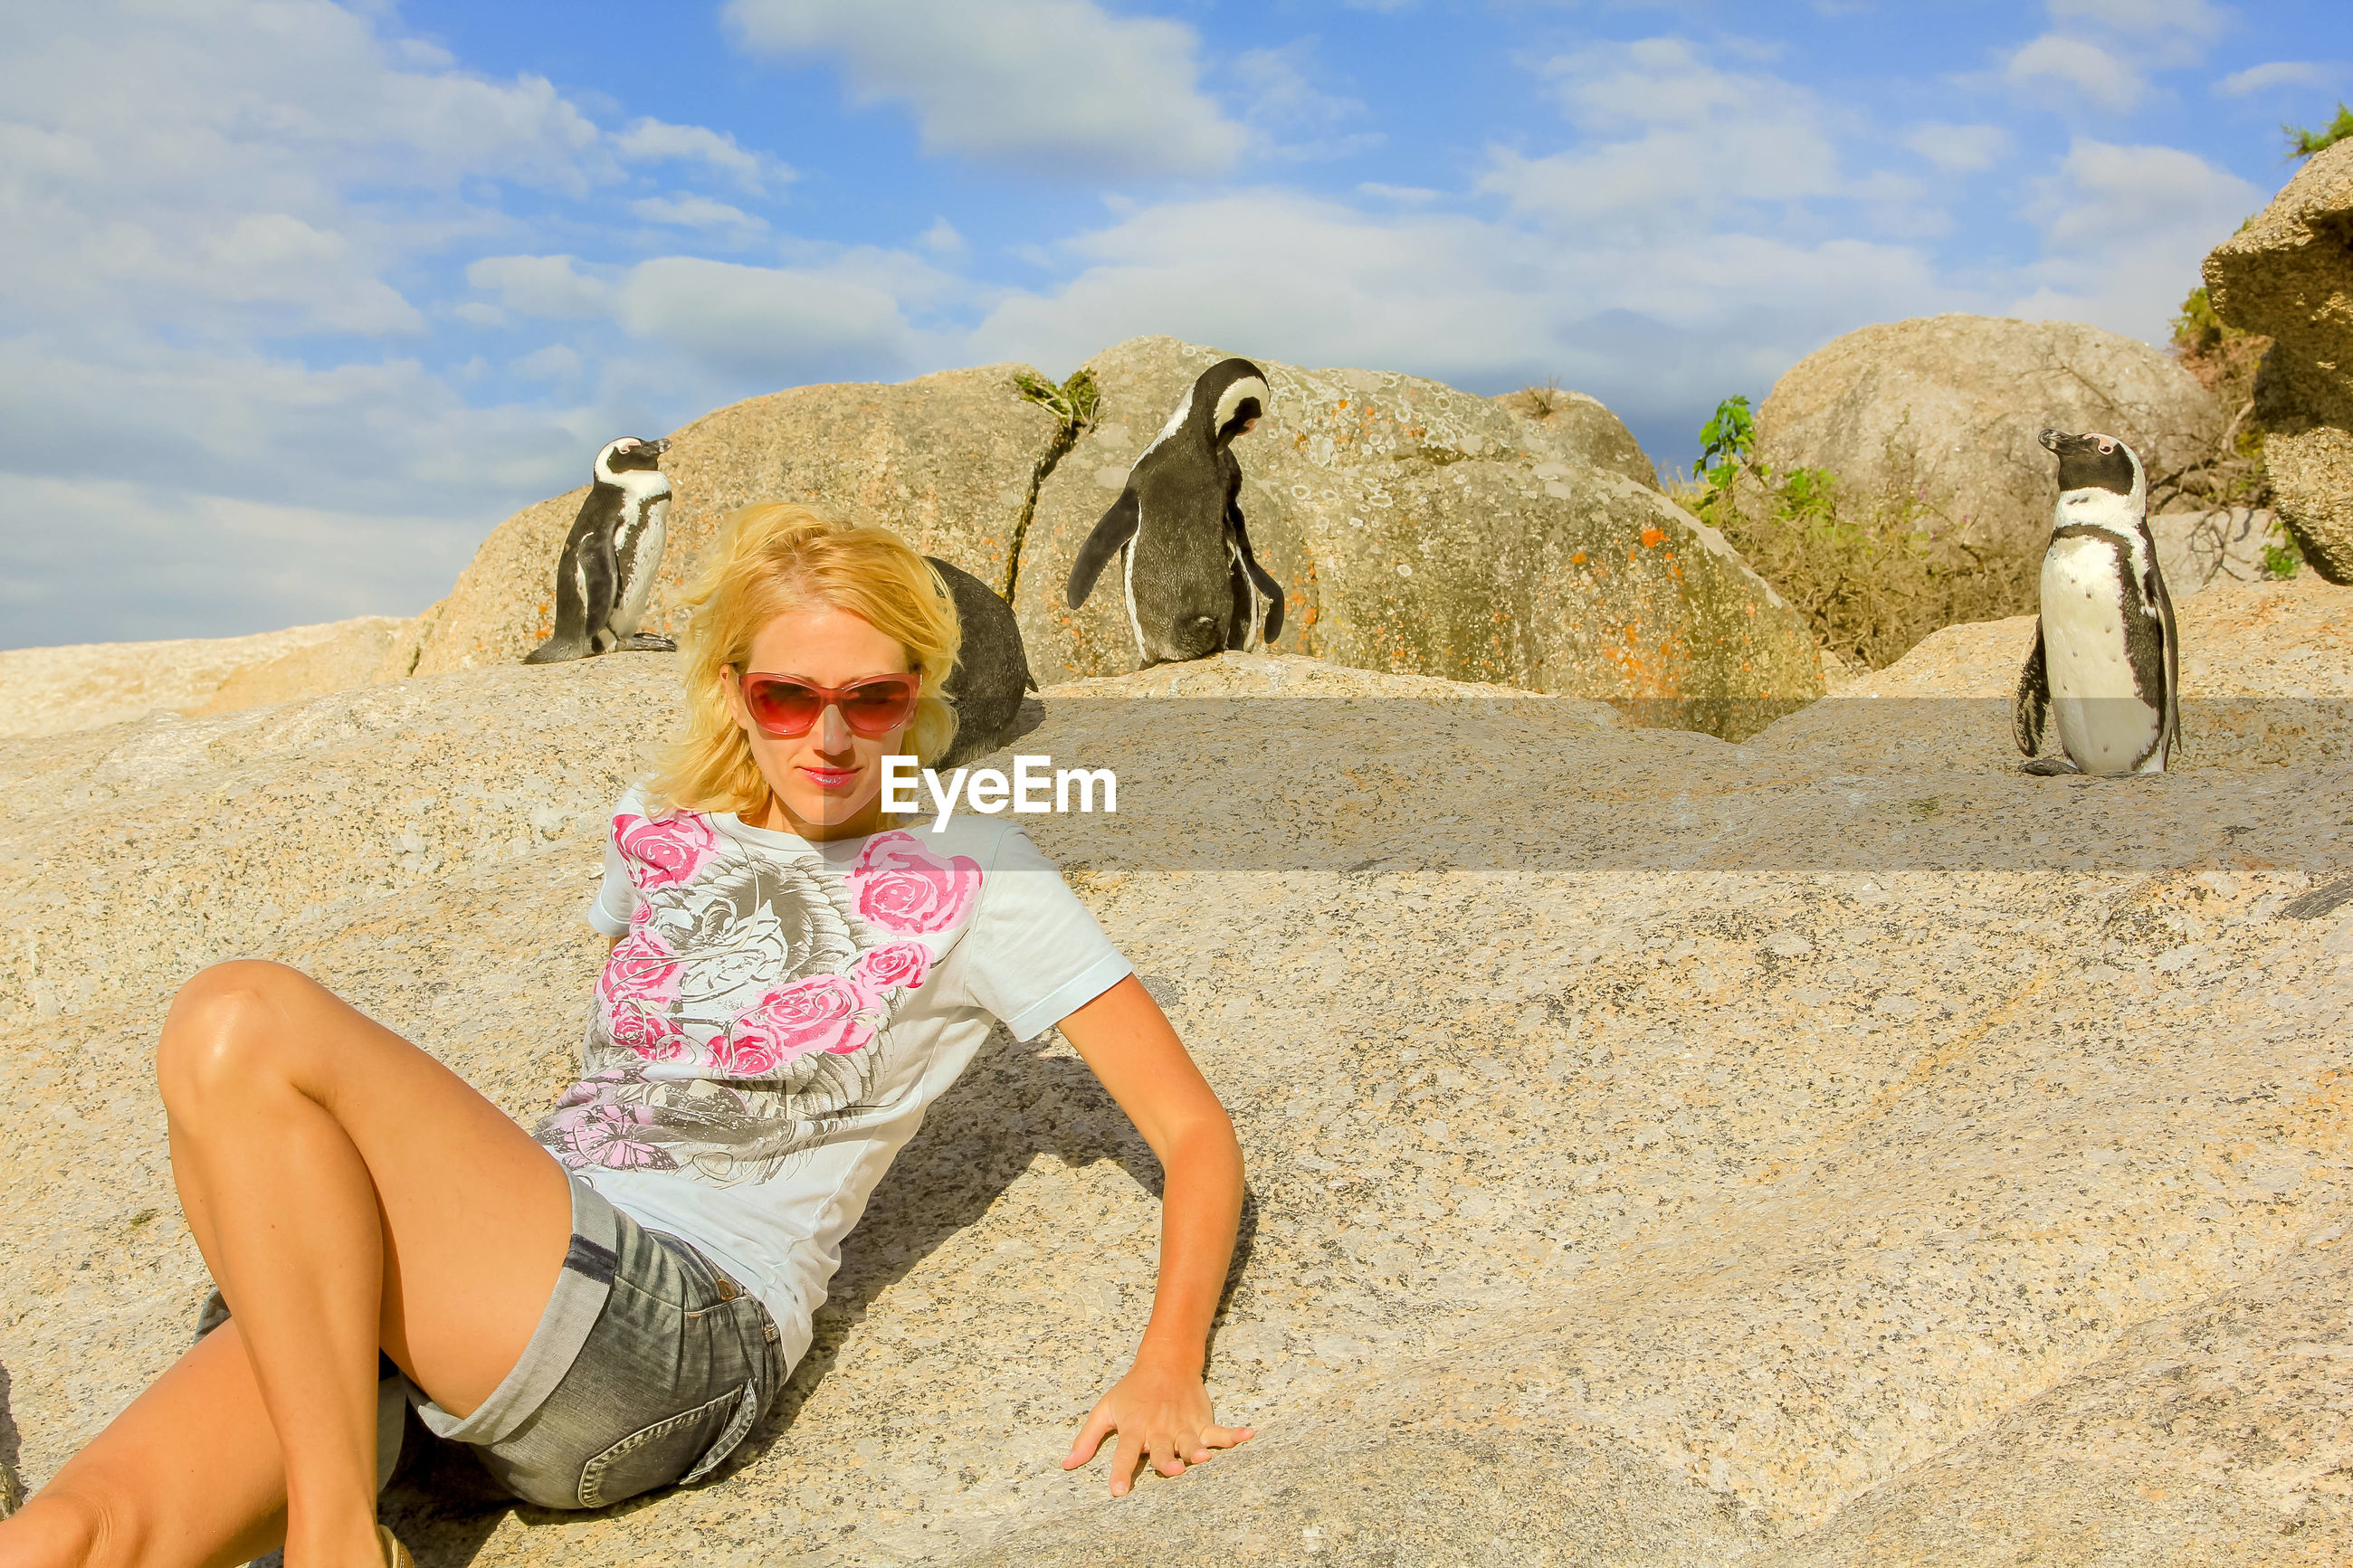 Portrait of woman on rock against penguins and sky